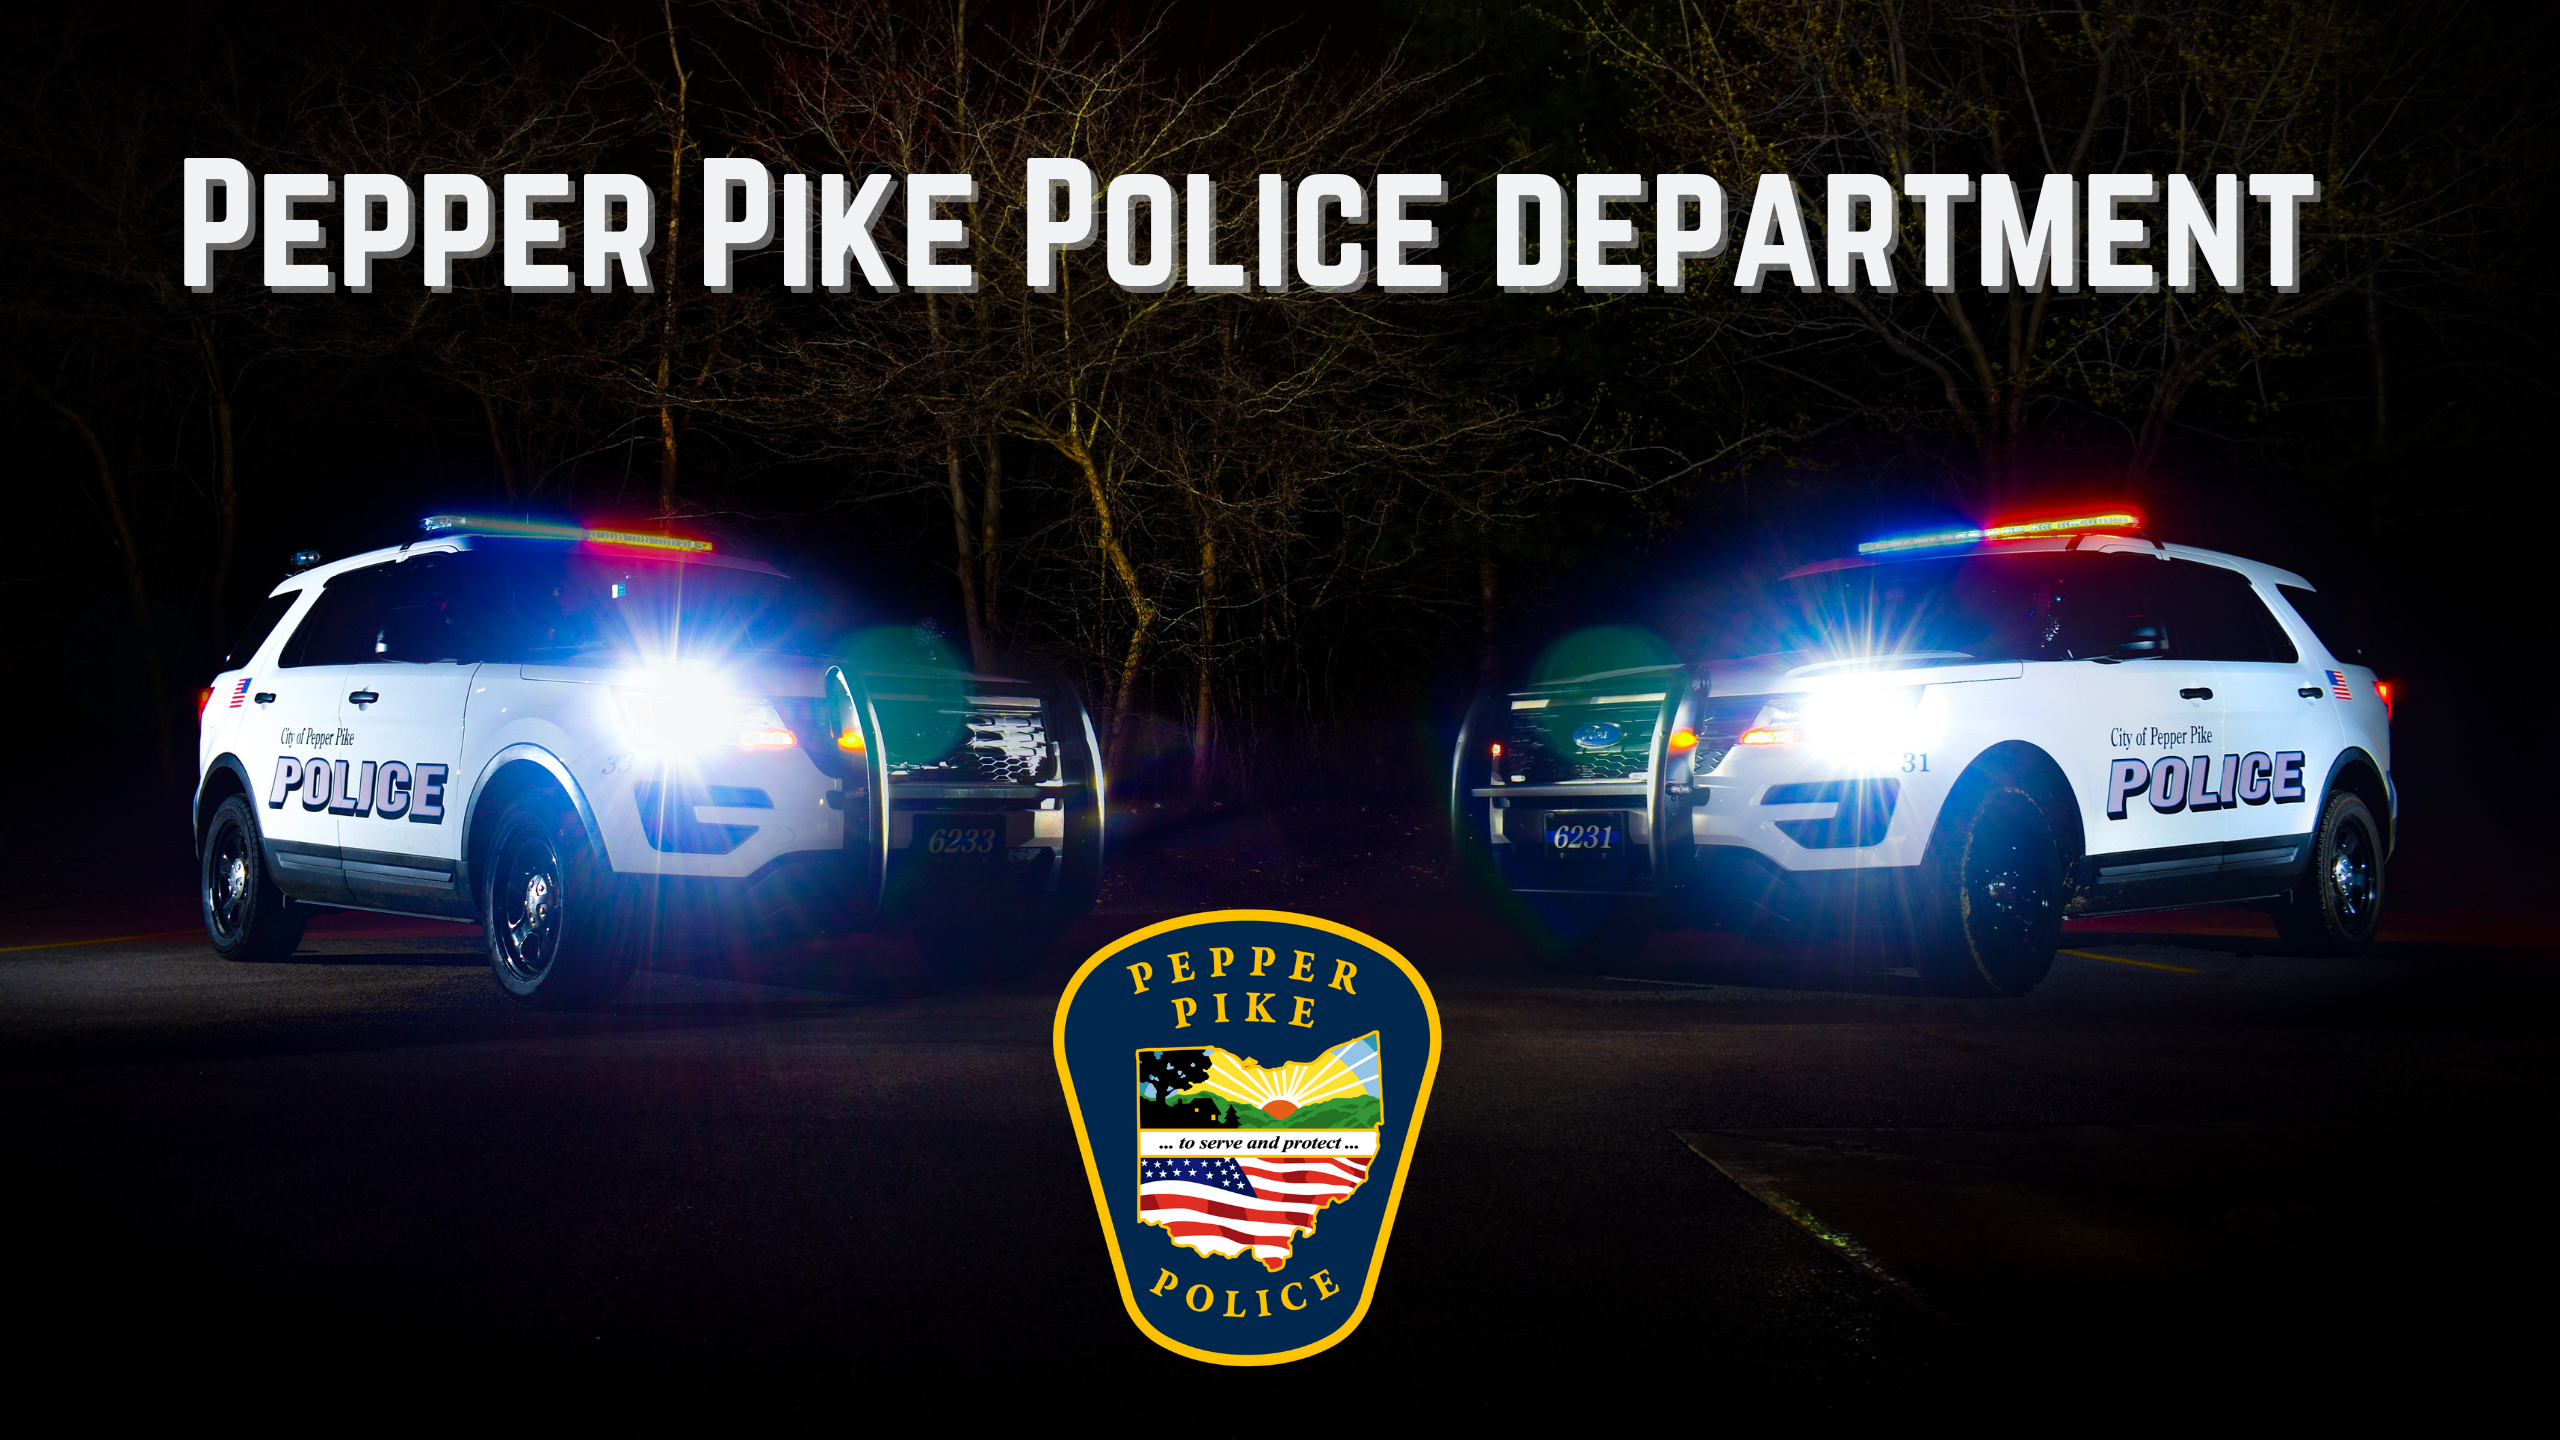 Pepper Pike PD